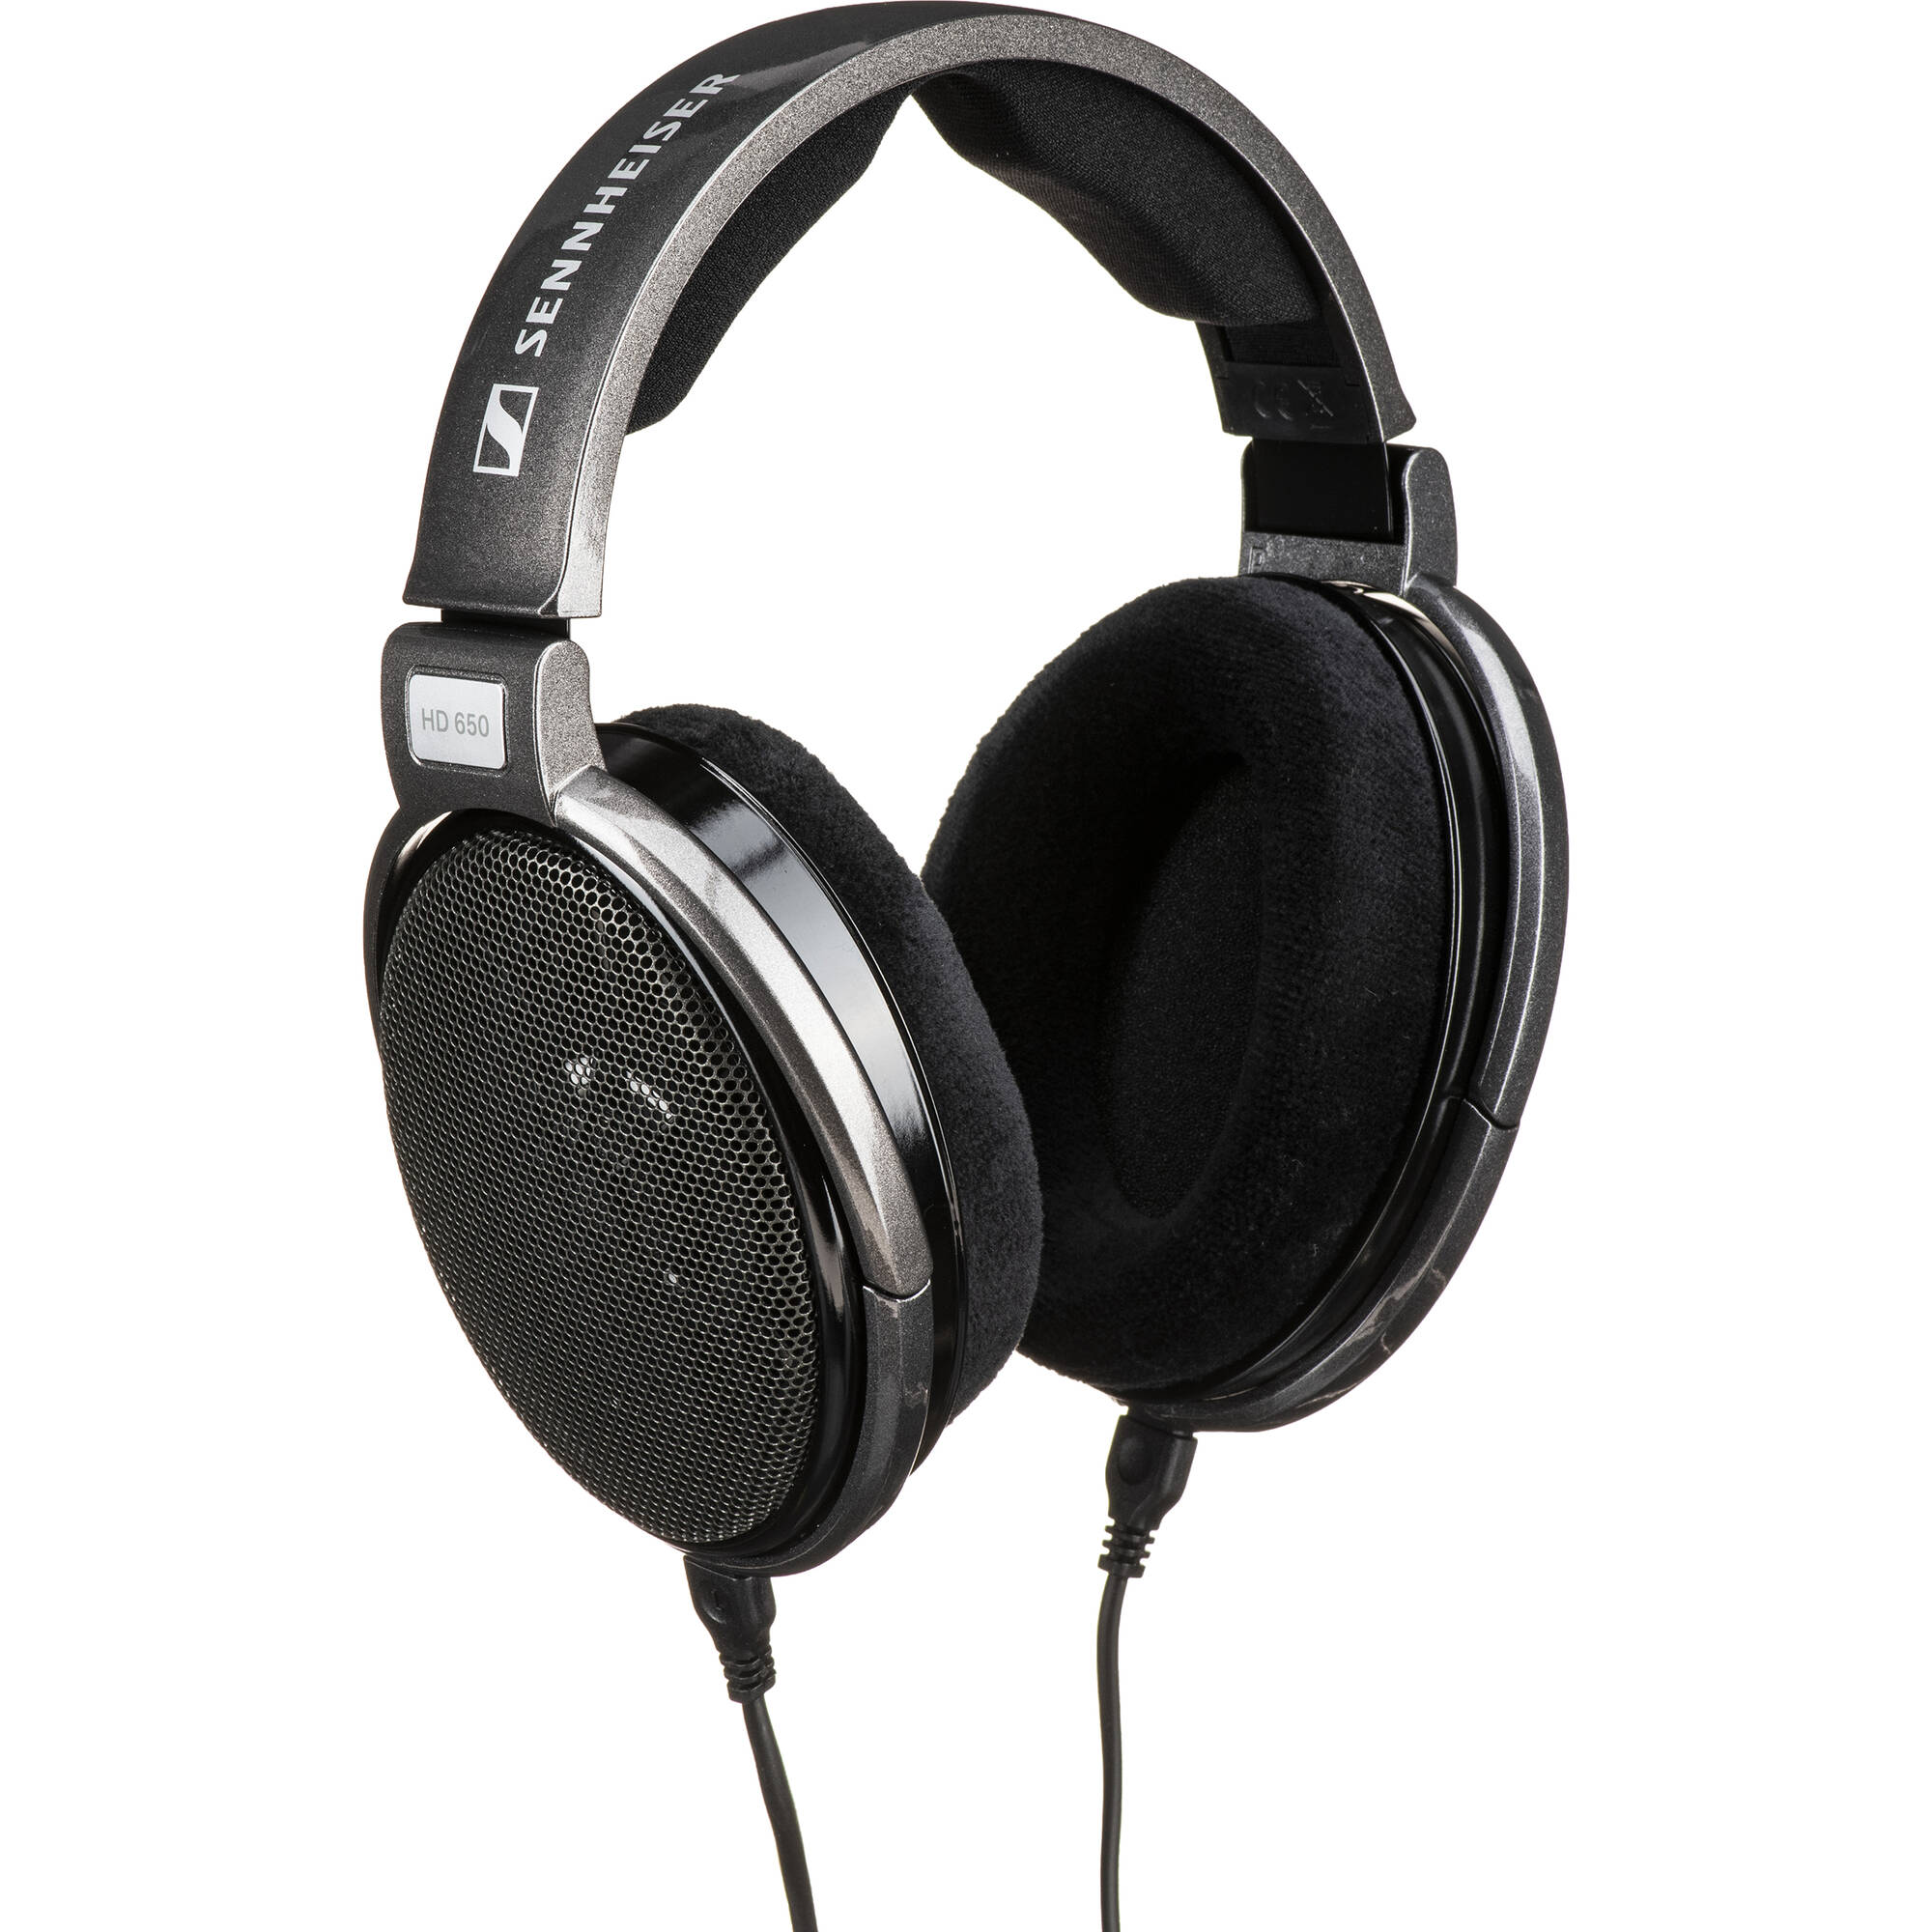 Zip Up Headphones Headphones Bh Photo Video